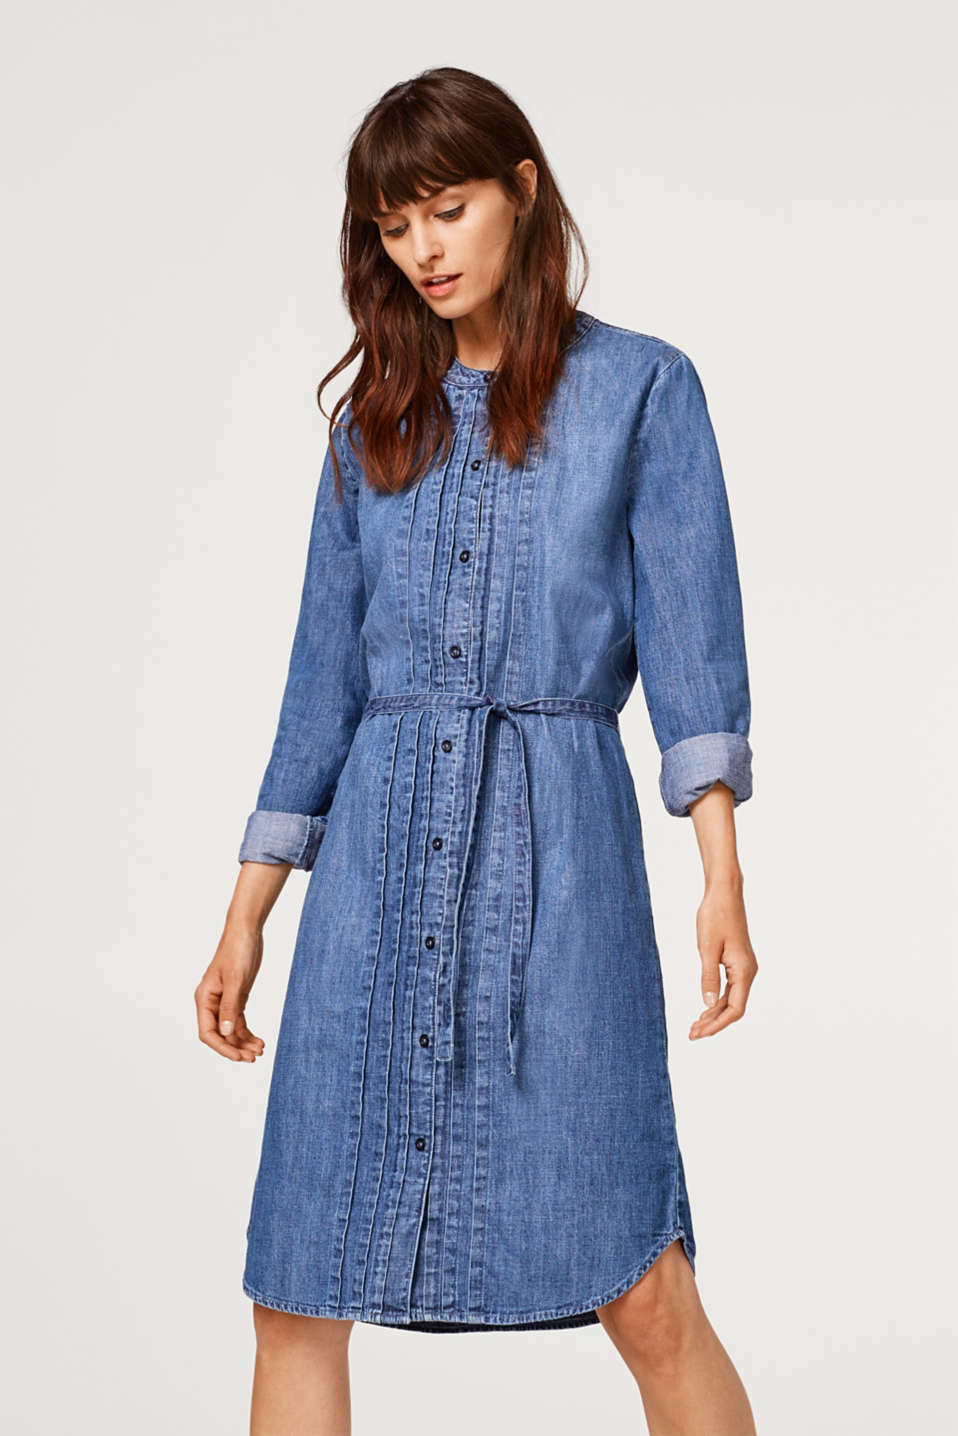 Esprit - Denim dress with pintucks, 100% cotton